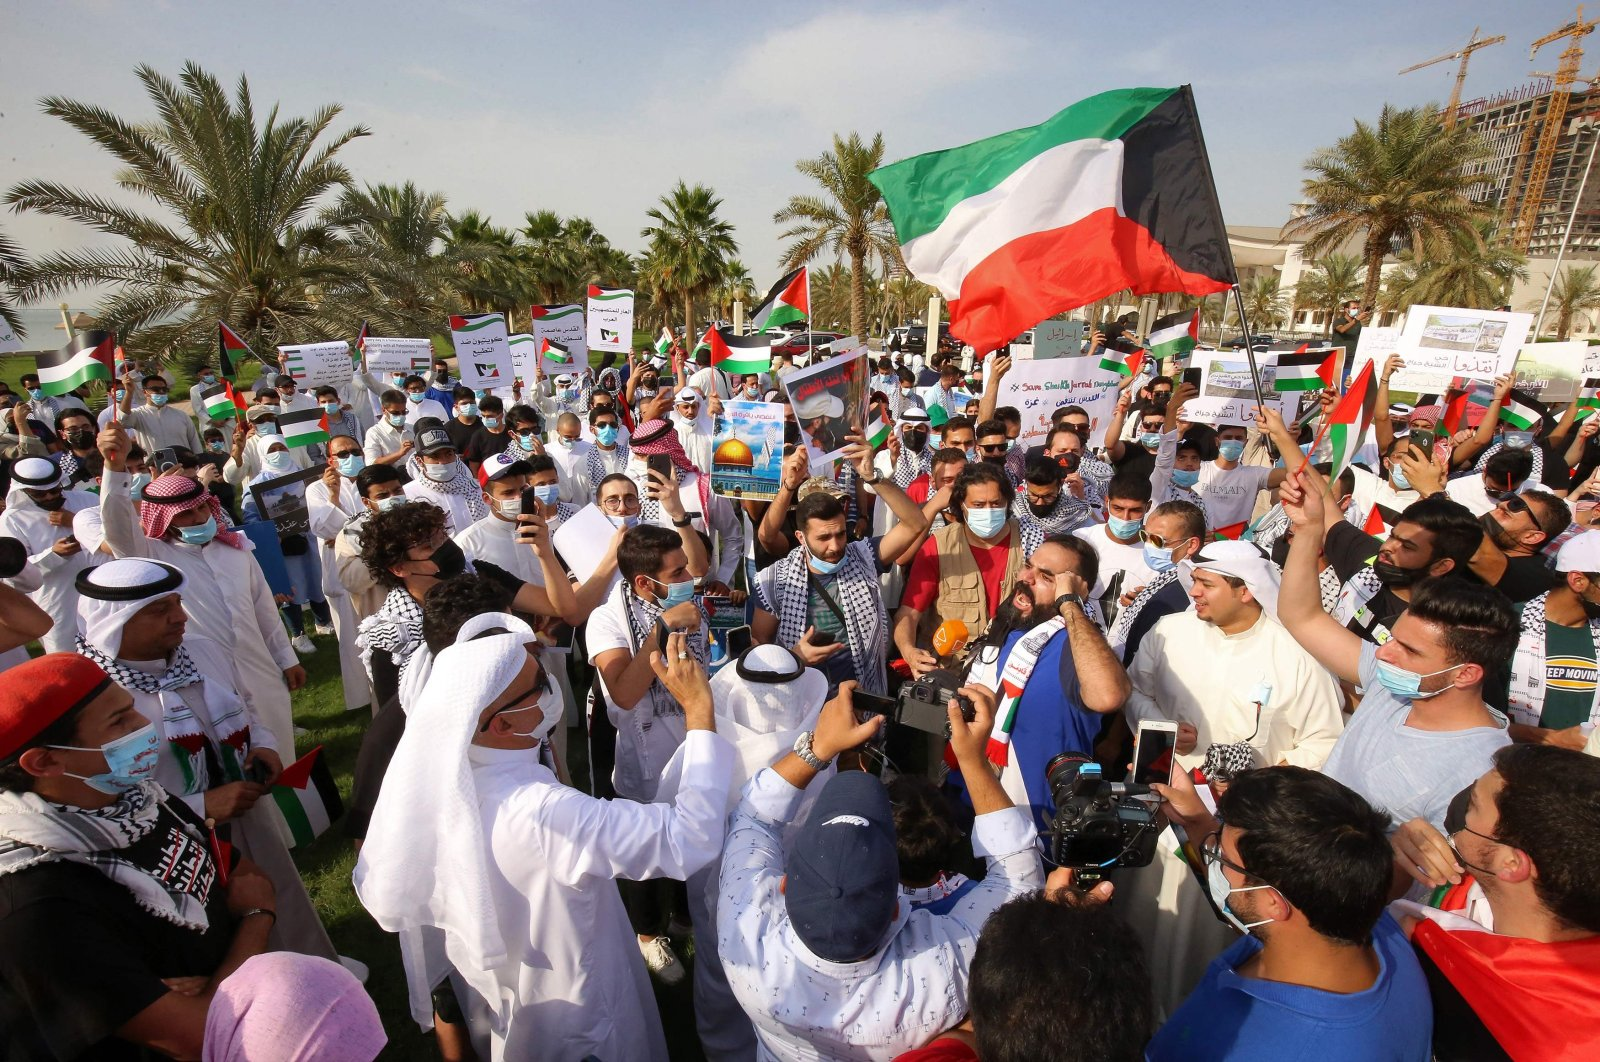 Kuwaitis chant slogans during a protest in solidarity with the Palestinian people, Kuwait City, Kuwait, May 11, 2021. (AFP Photo)